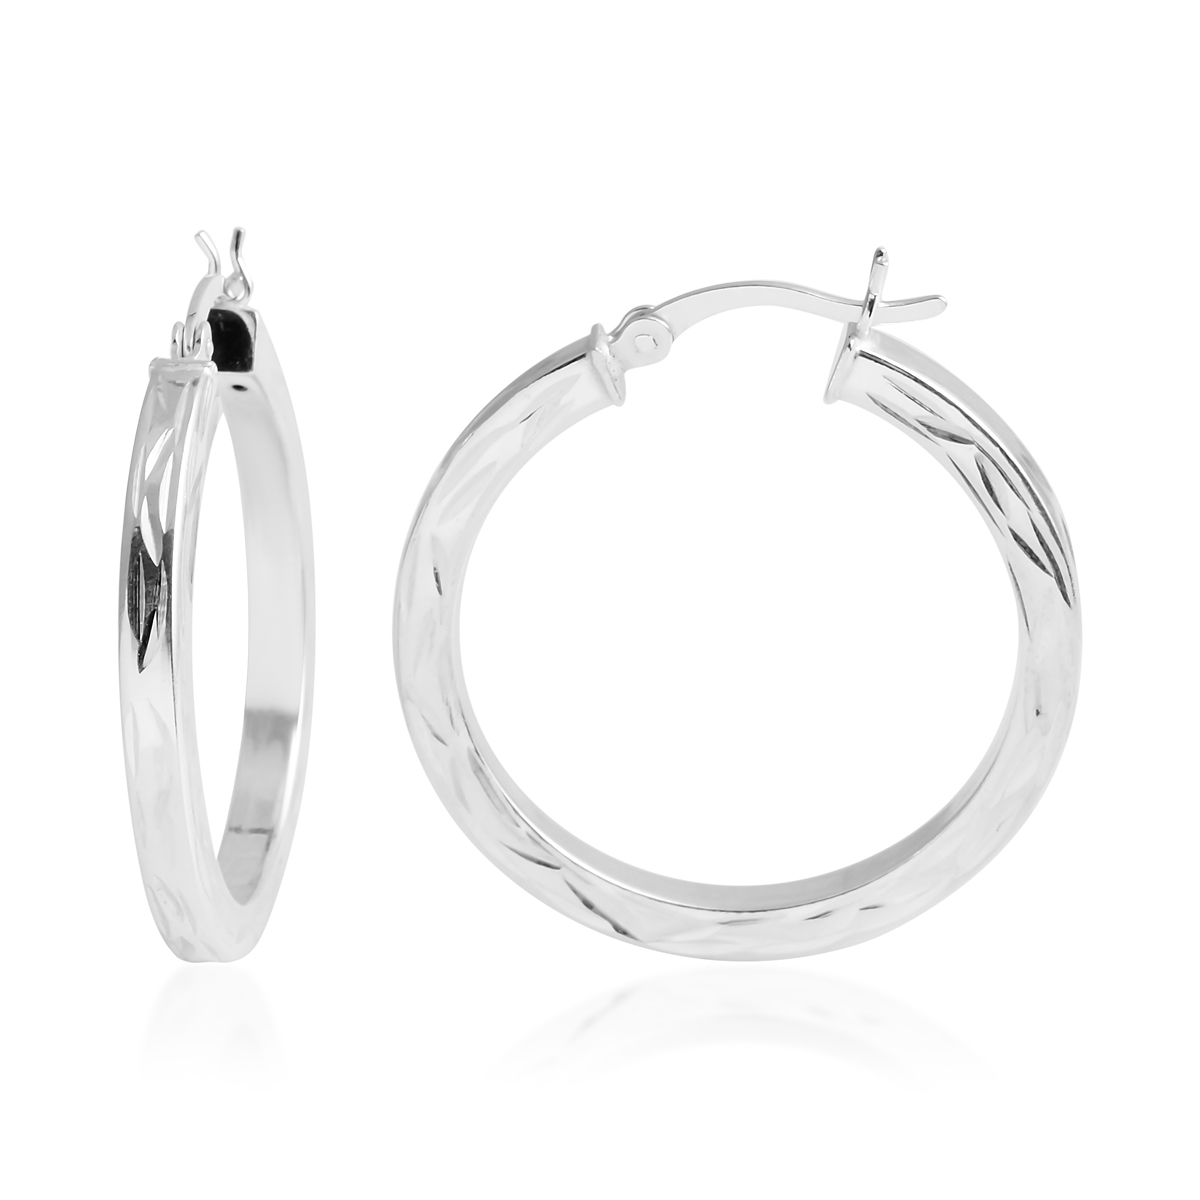 3d663e344 Women's 925 Sterling Silver Hoops Hoop Earrings for Women Jewelry | eBay